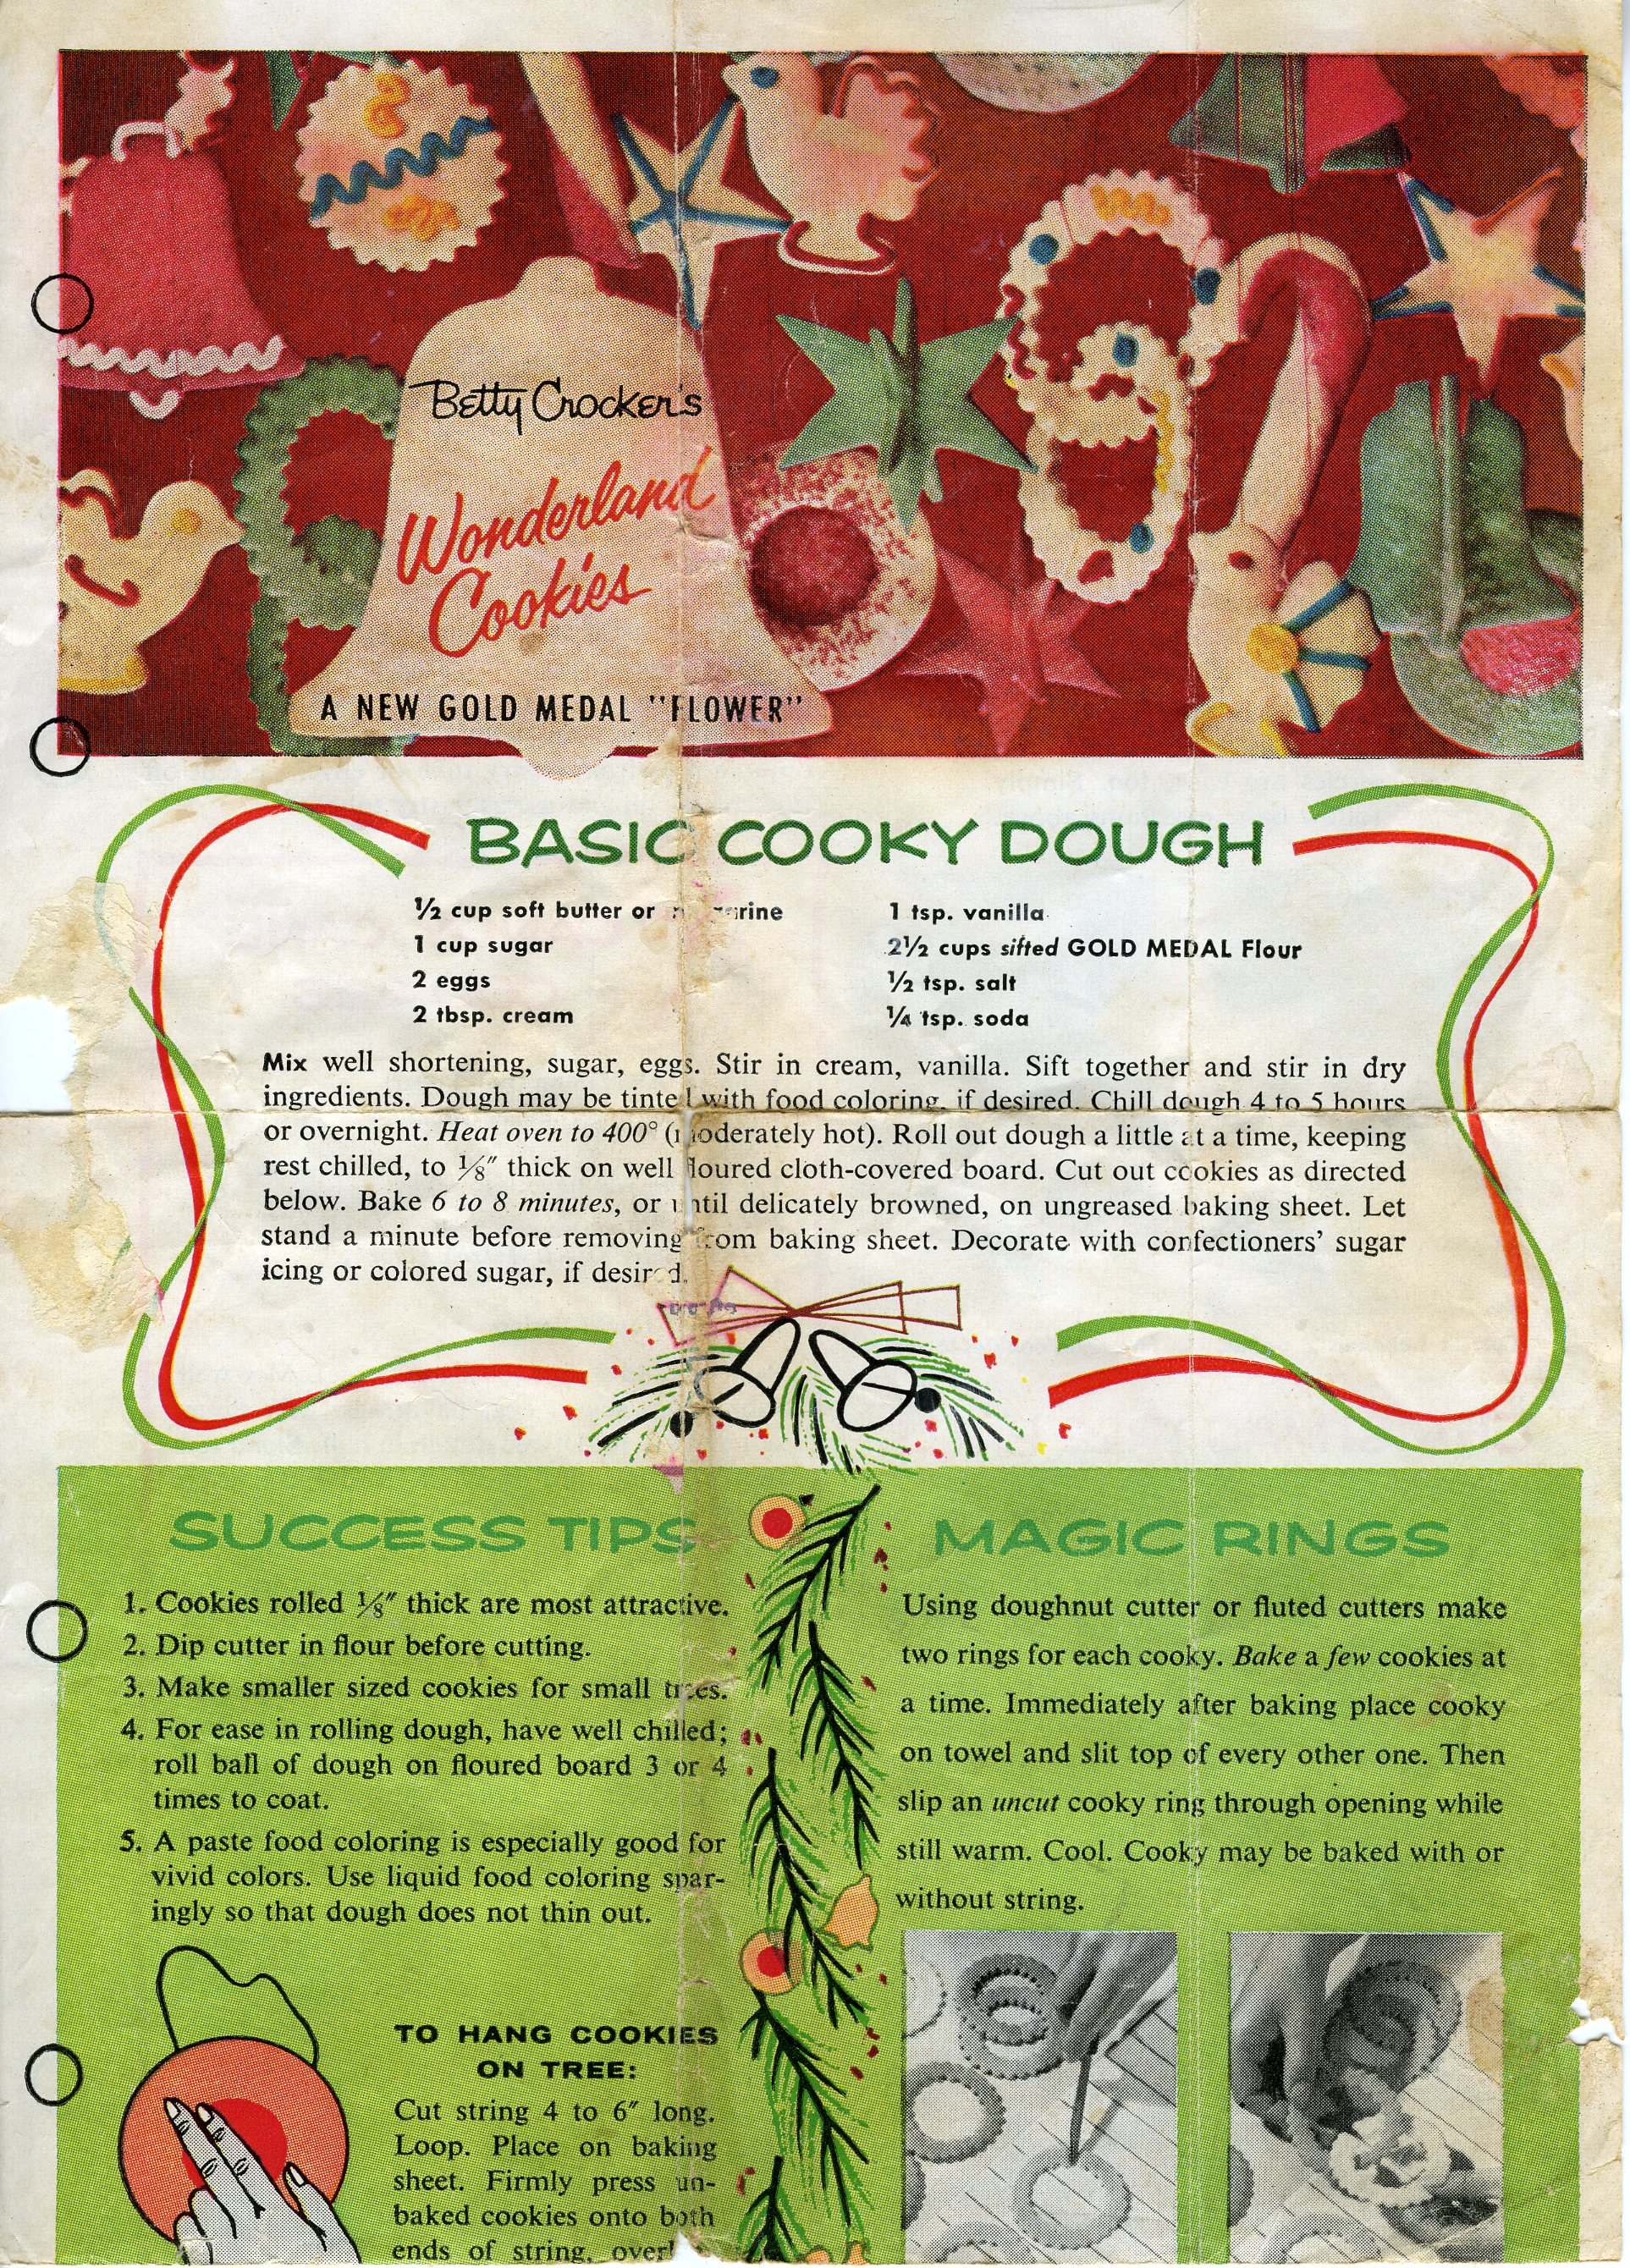 Christmas cookies recipes betty crocker - Coocke Recipes